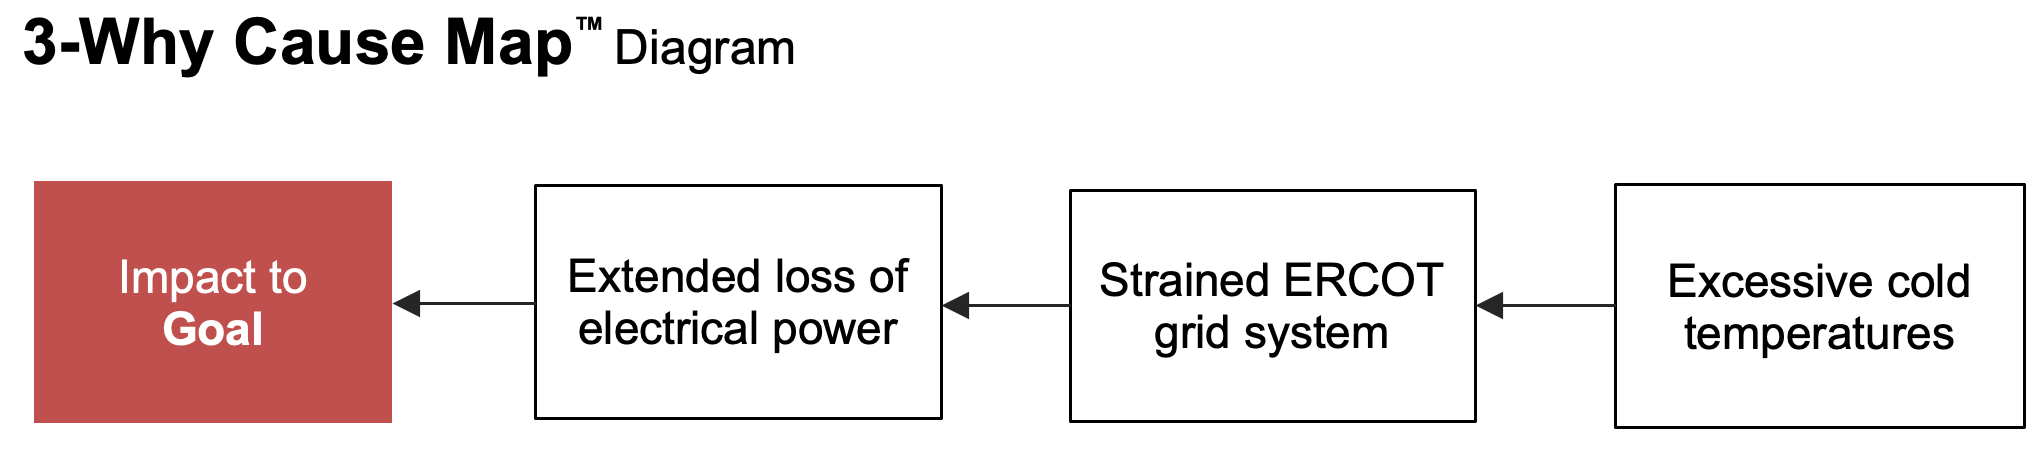 3-Why Cause Map™ Diagram of loss of power incident